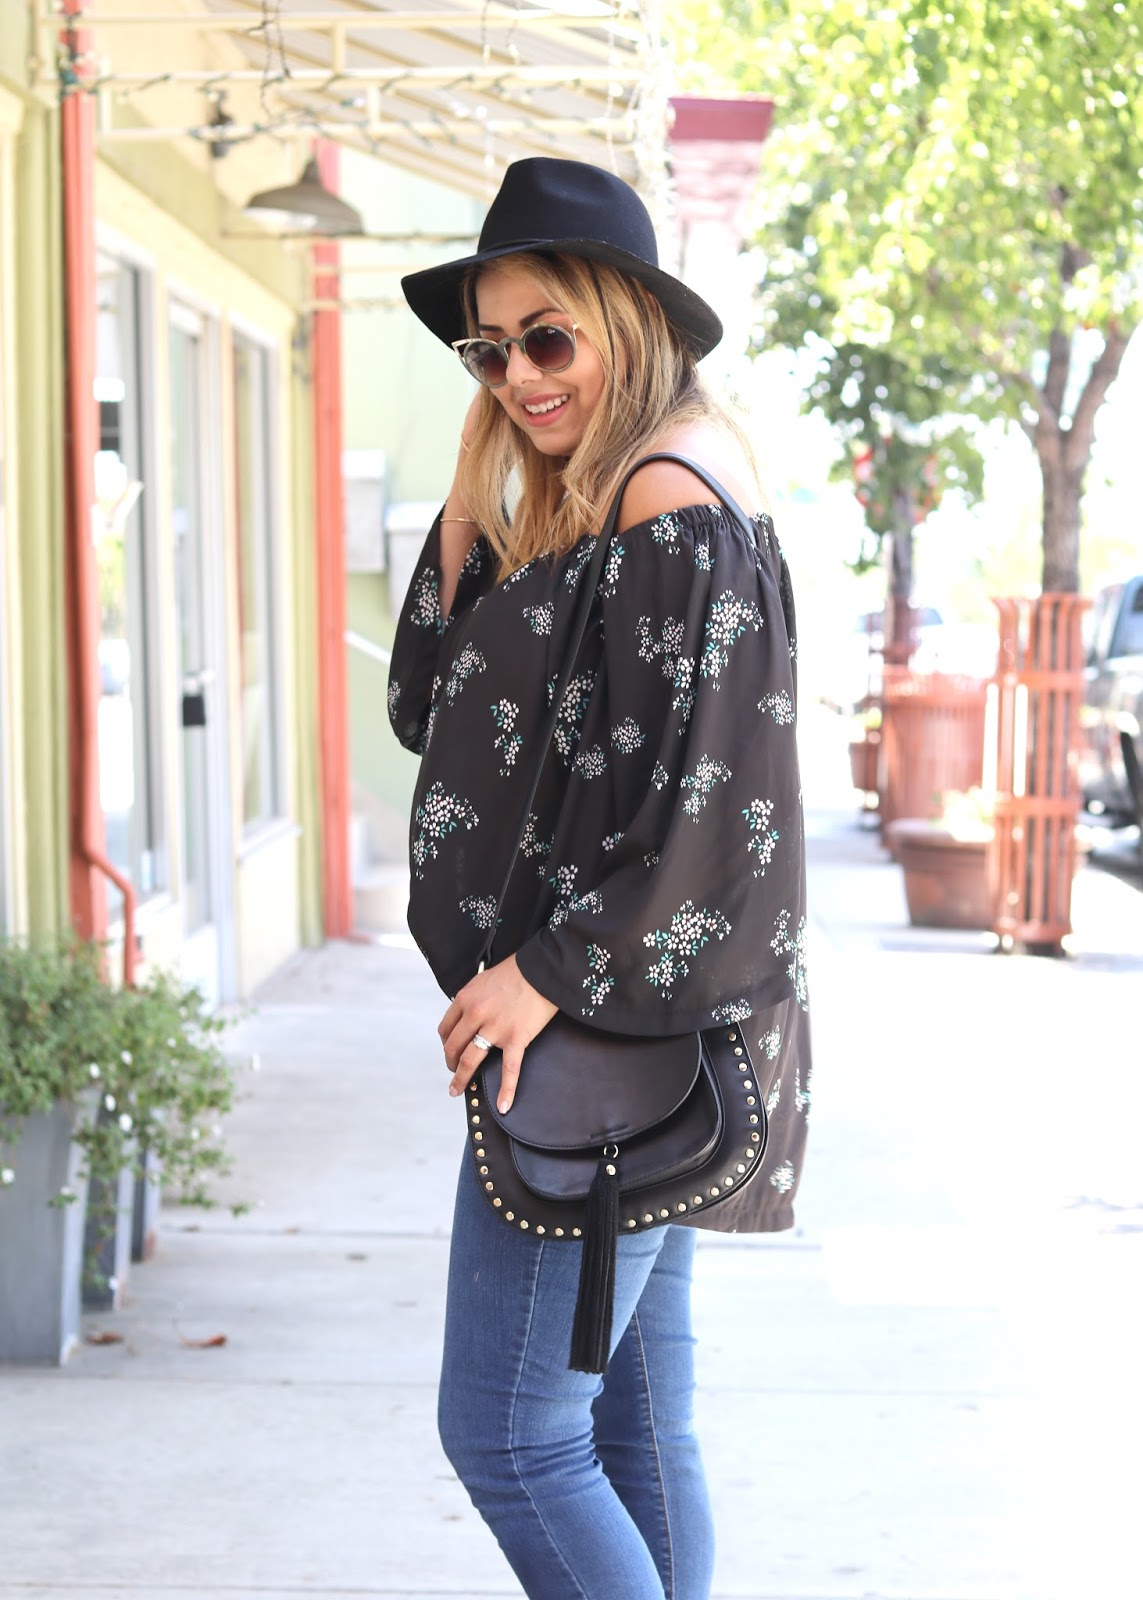 north park san diego outfit, casual hat outfit, black felt merona hat, target hat outfit